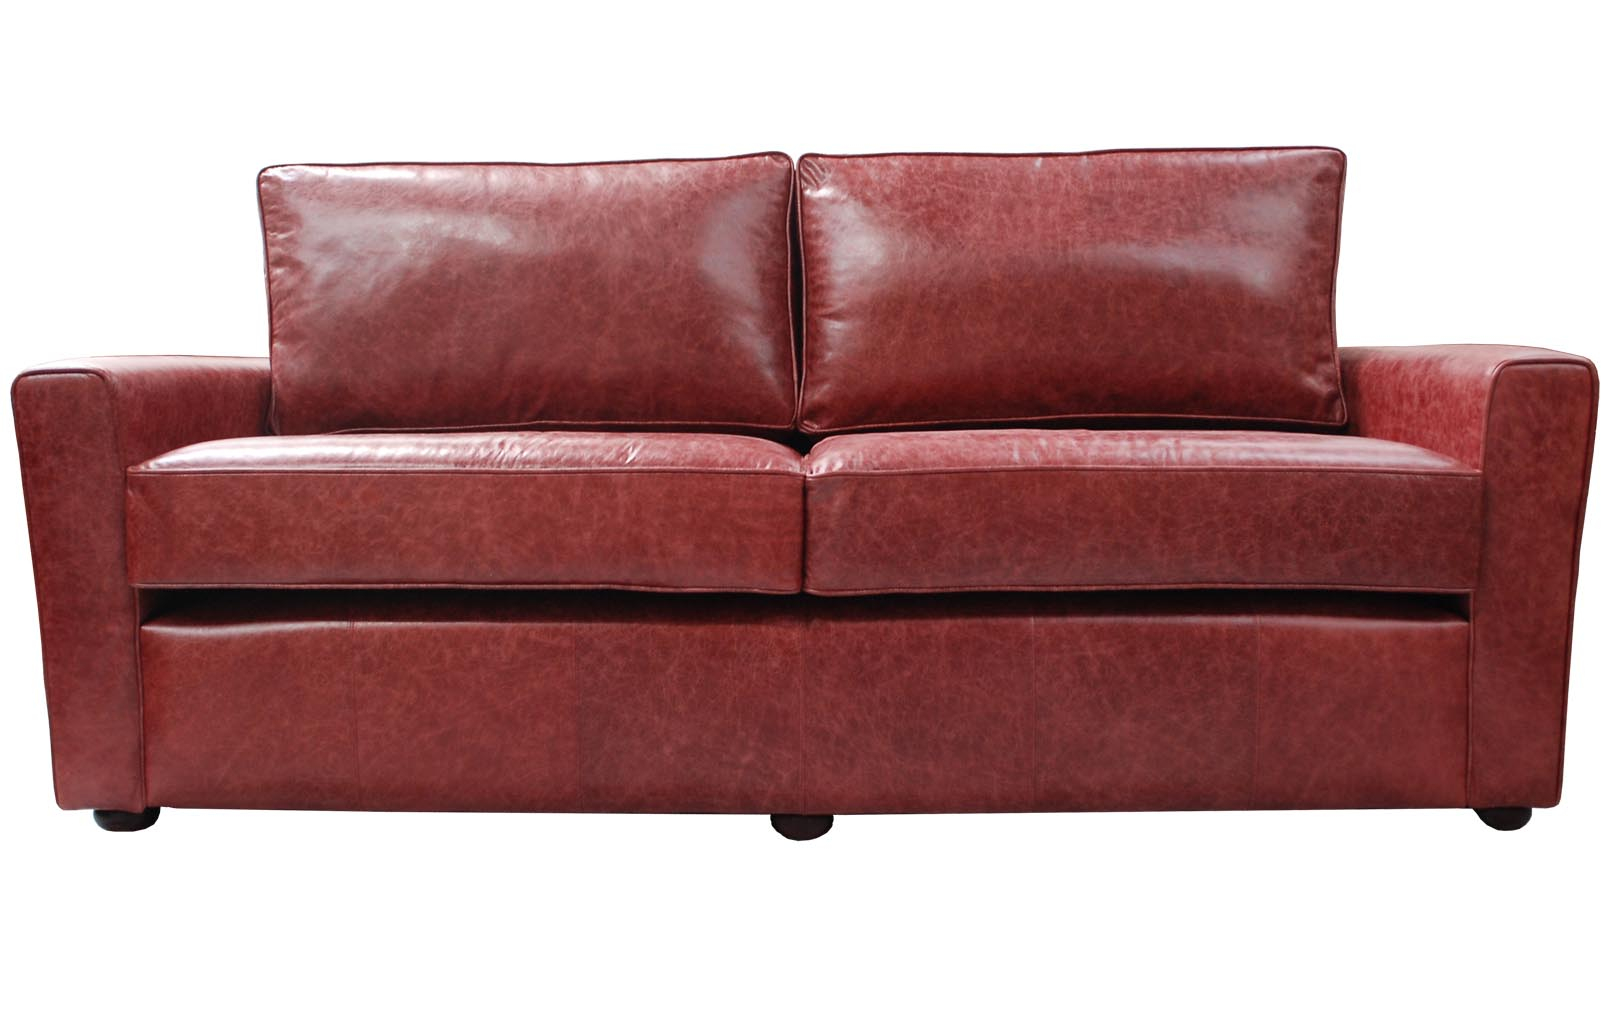 Longford Contemporary Leather Sofas regarding sizing 1622 X 1014